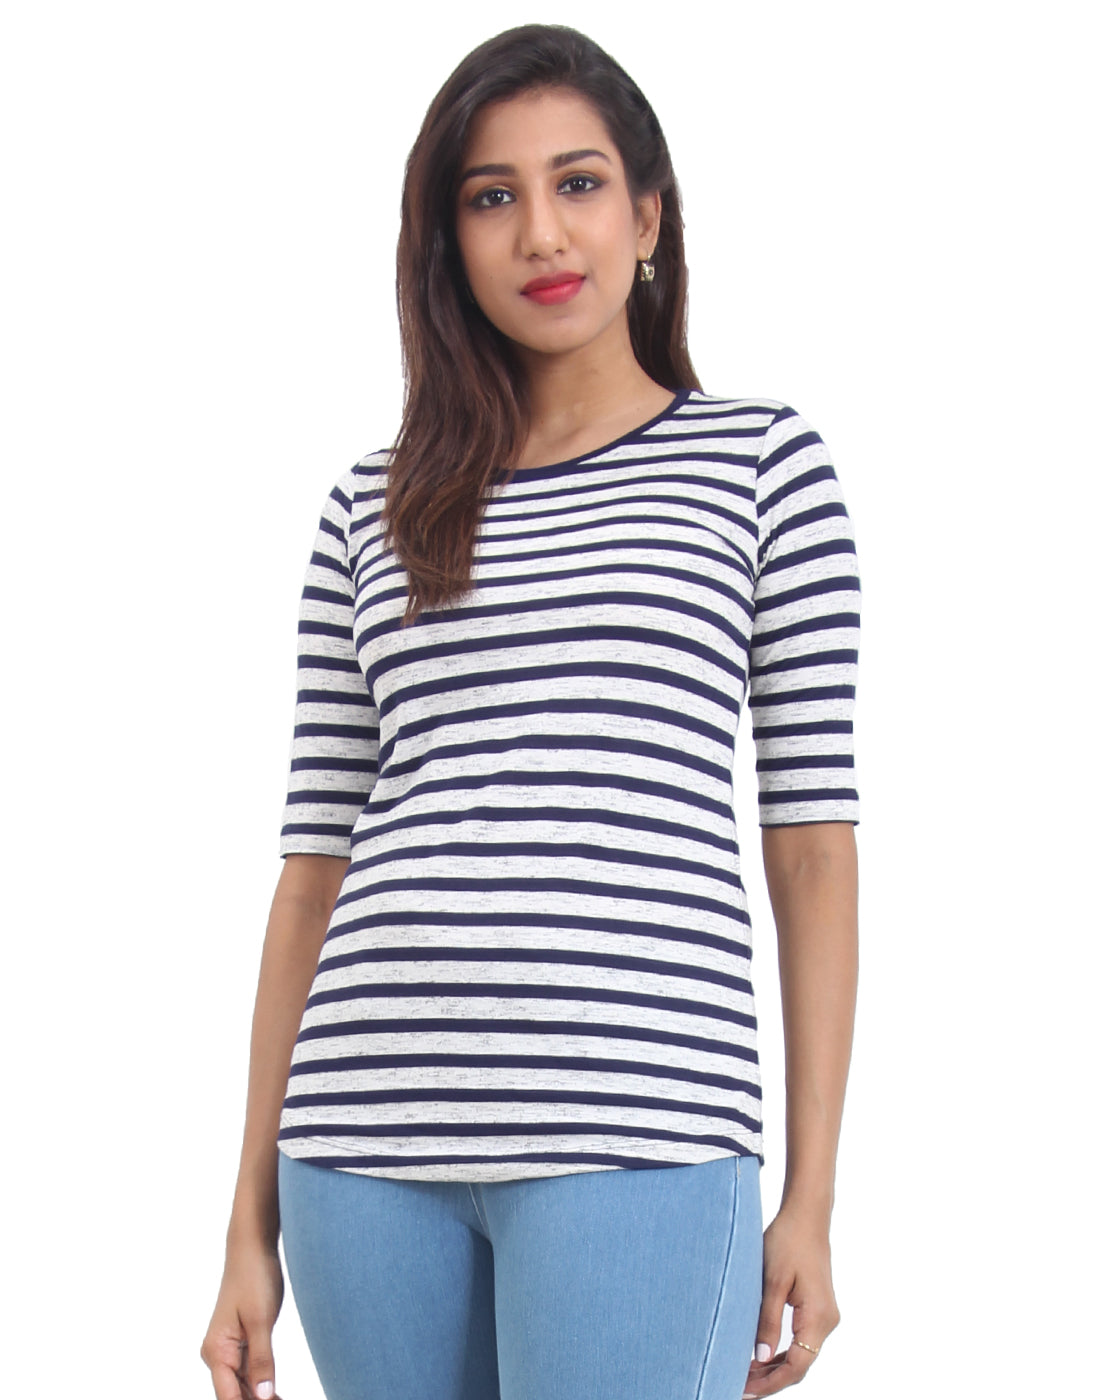 Navy Blue Striped Knitted Women's T-shirt